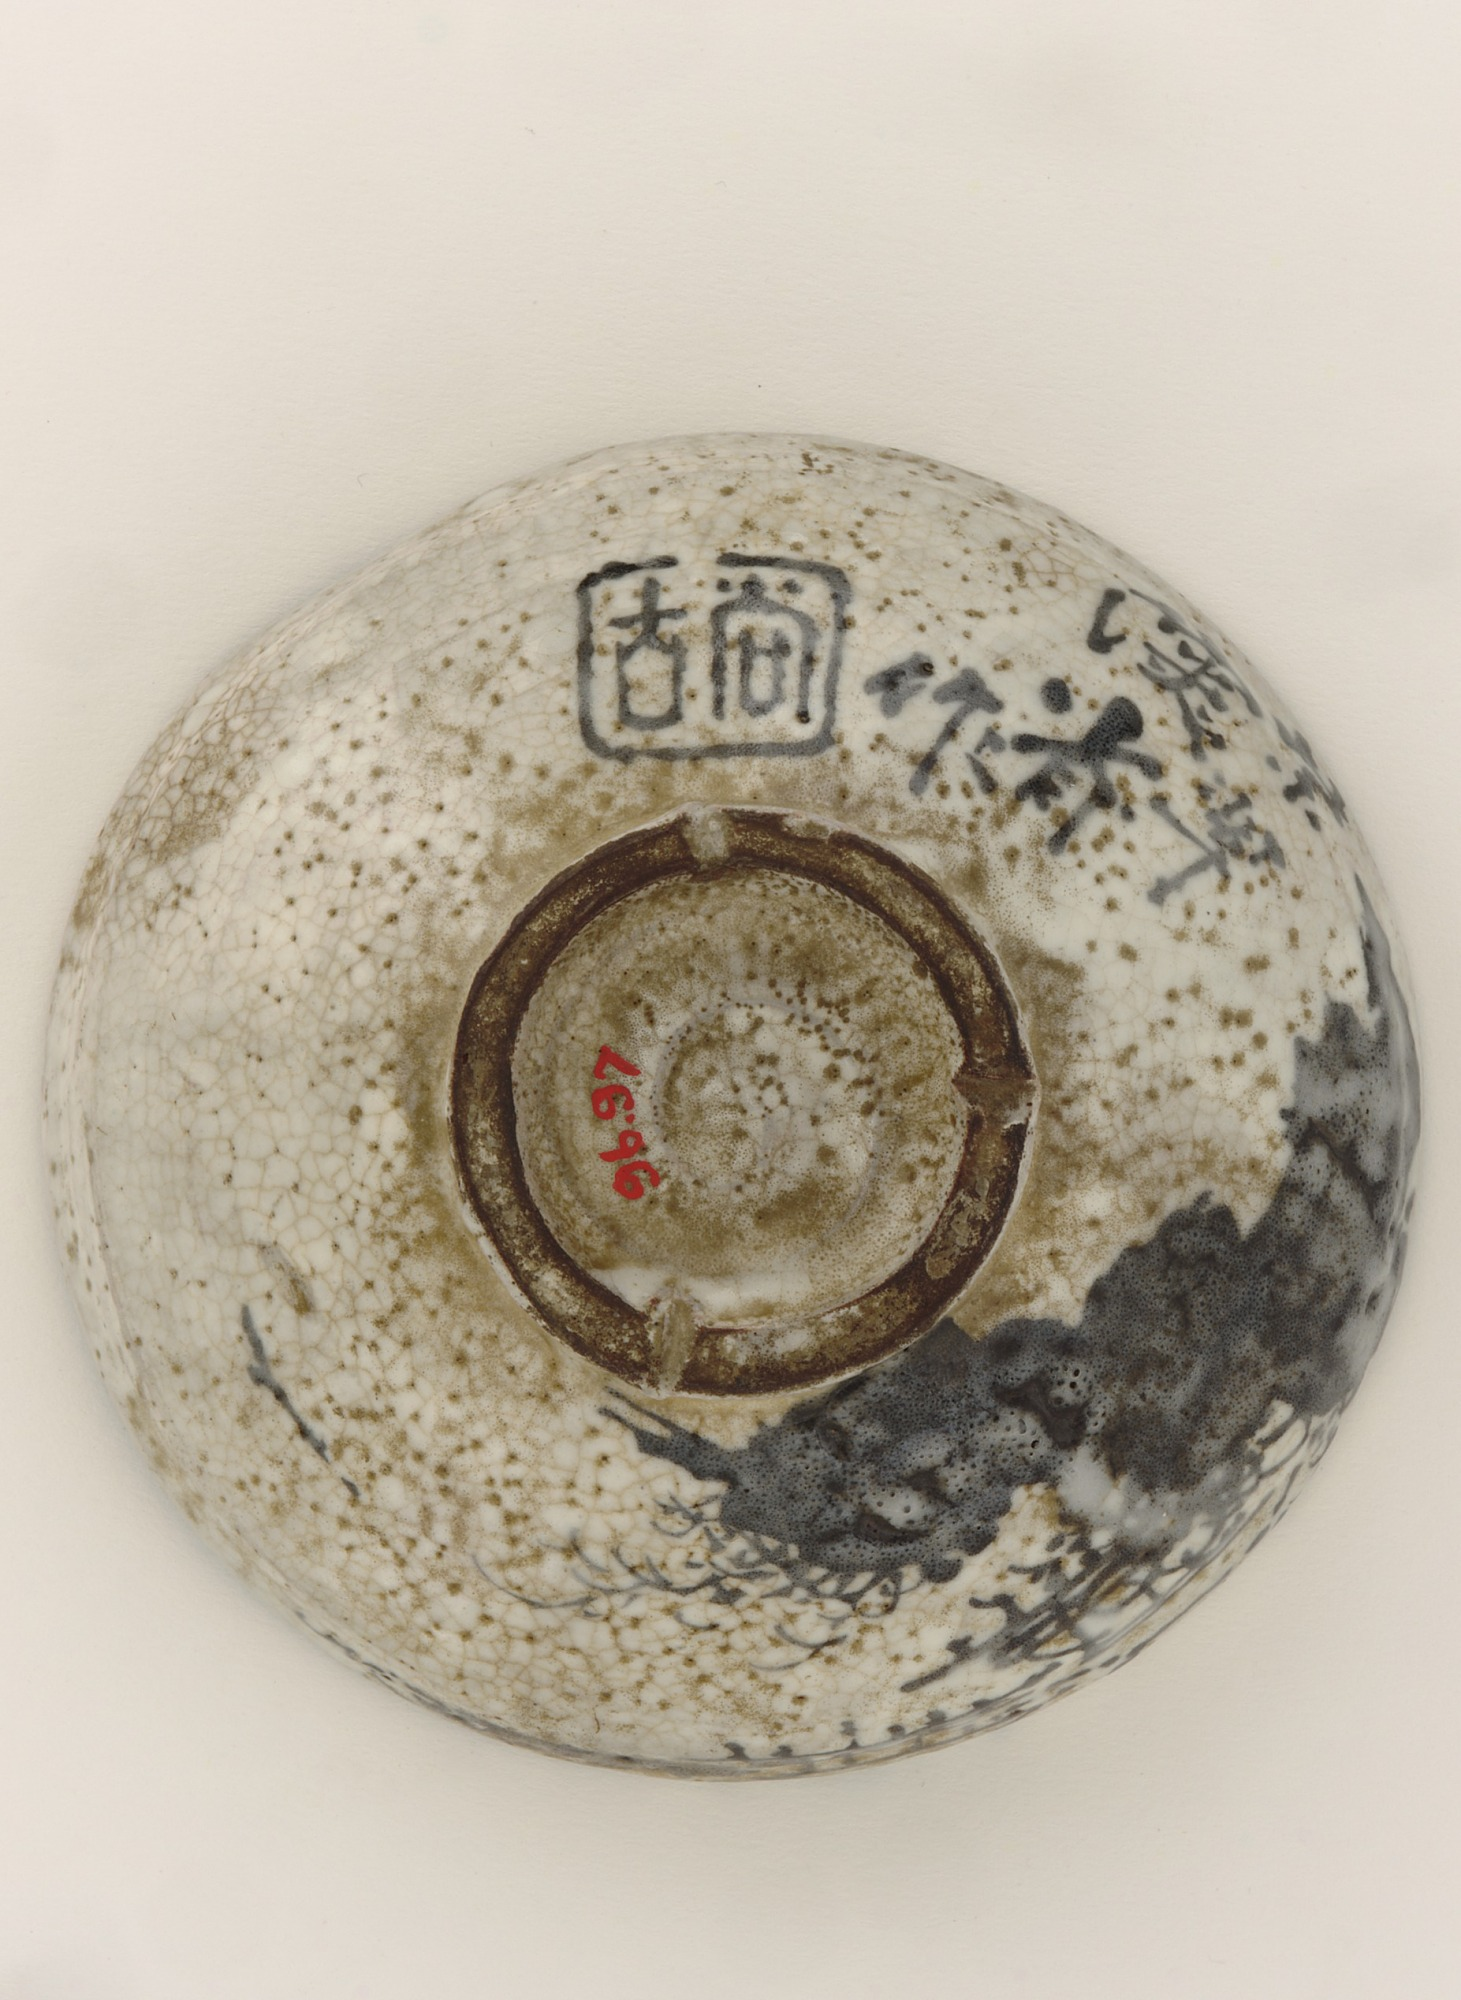 base: Kenzan style tea bowl with design of mountain retreat